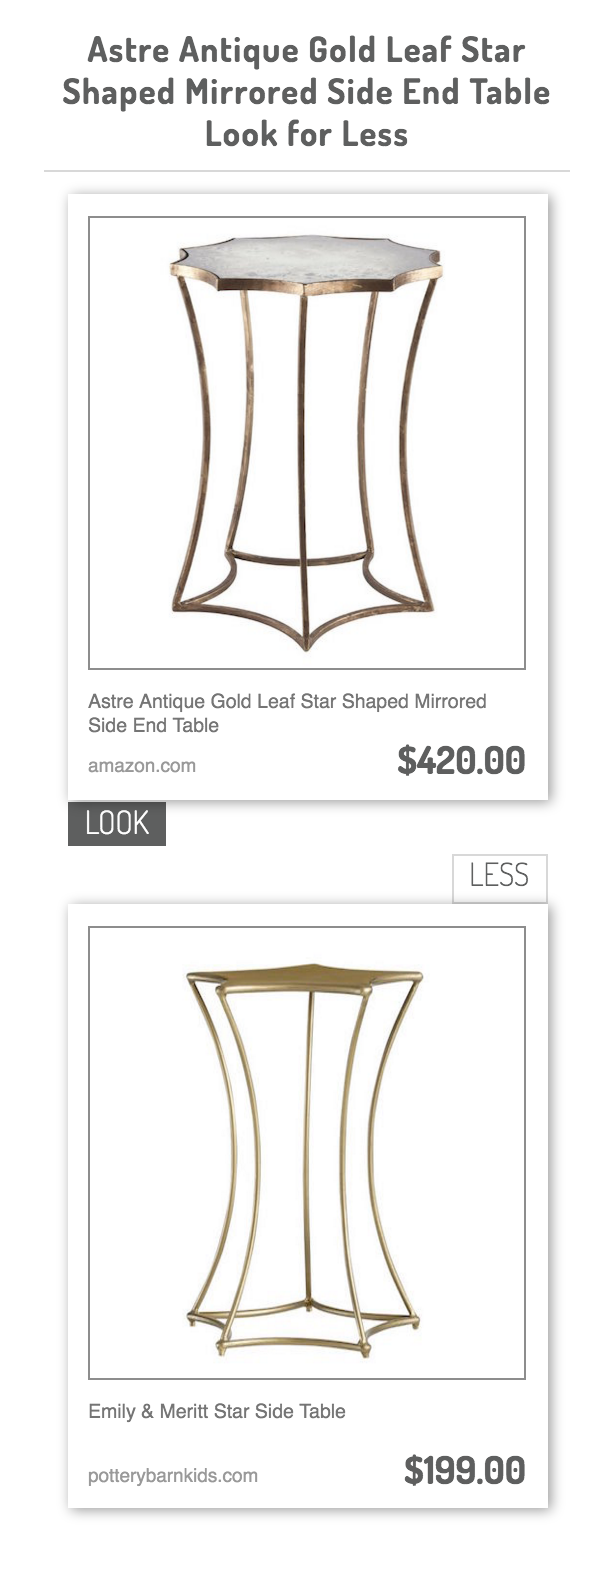 d98658a6f02d Astre Antique Gold Leaf Star Shaped Mirrored Side End Table vs Emily and  Meritt Star Side Table